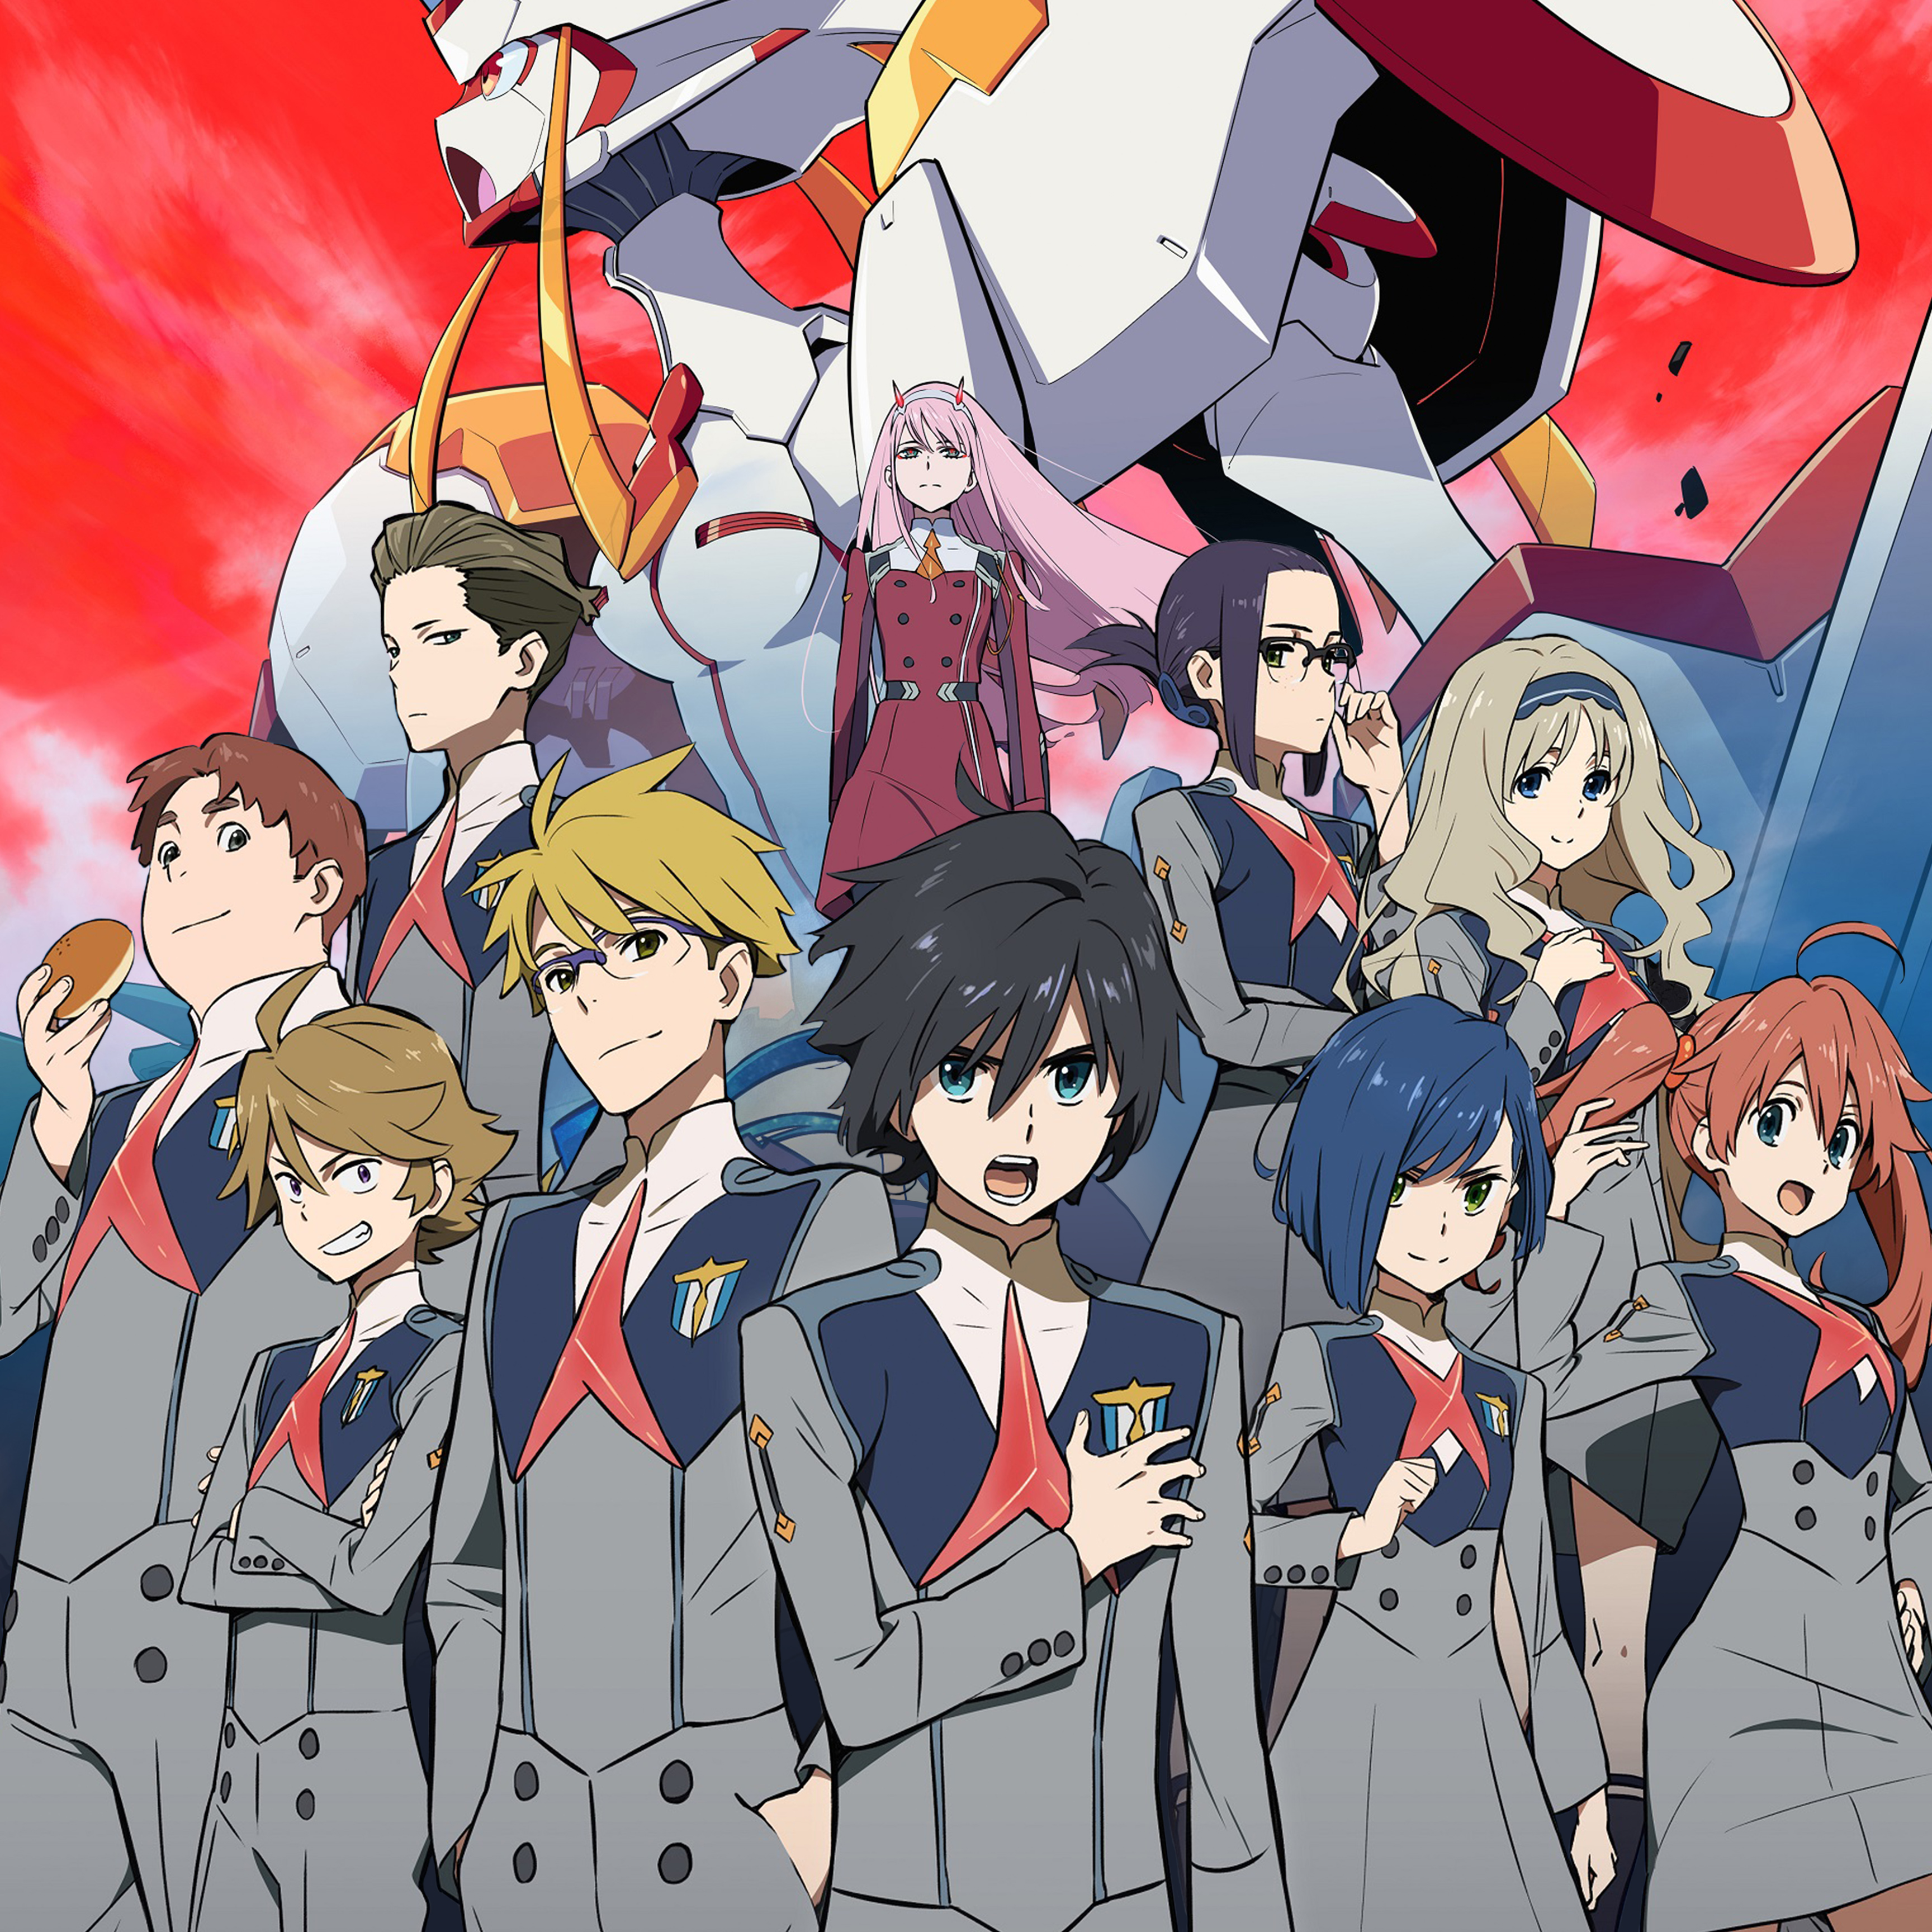 Watch Darling In The Franxx Episodes Sub & Dub | Action/Adventure